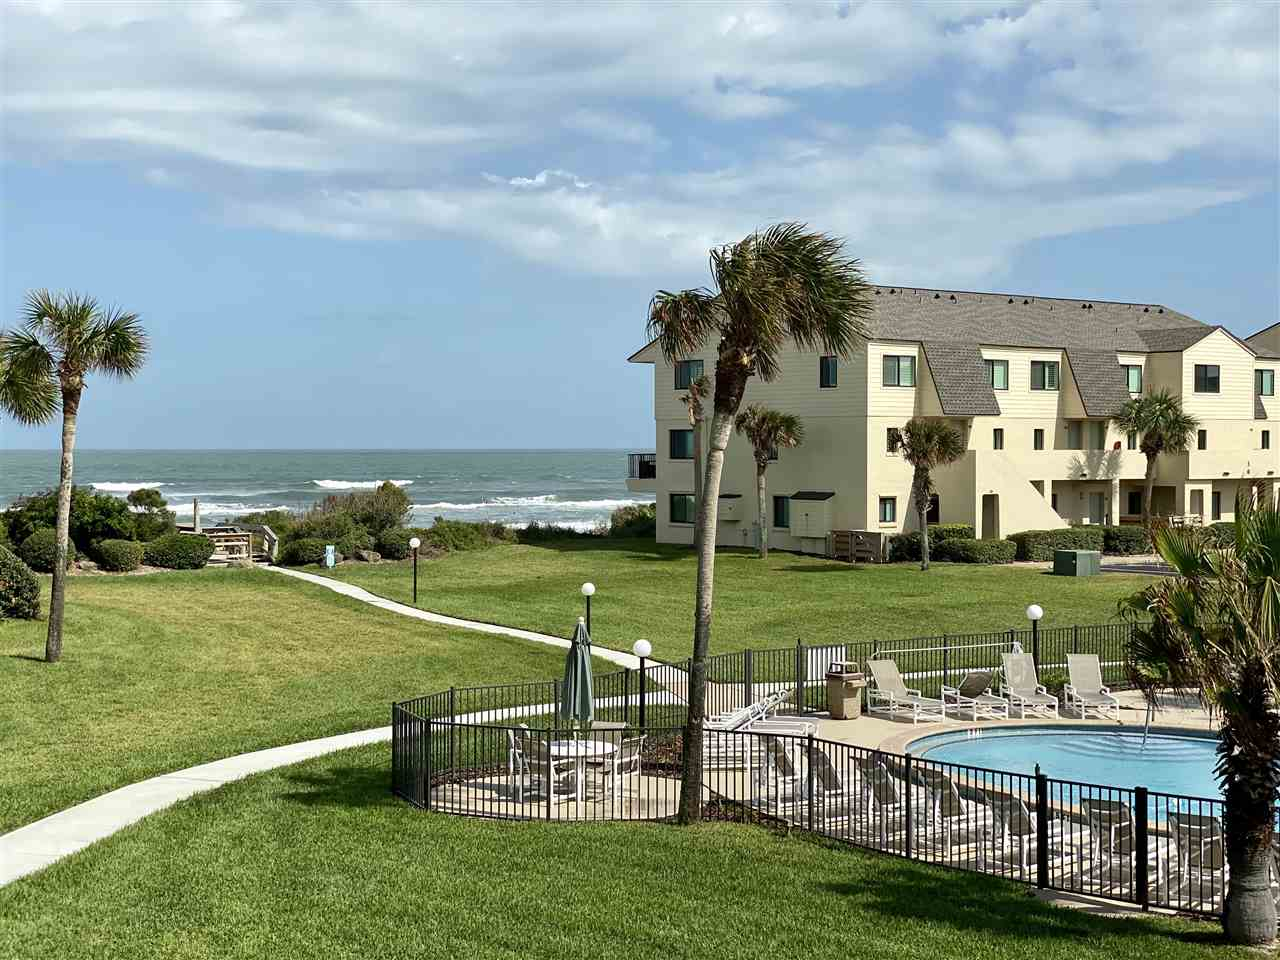 8550 A1A SOUTH #115, ST AUGUSTINE, FL 32080